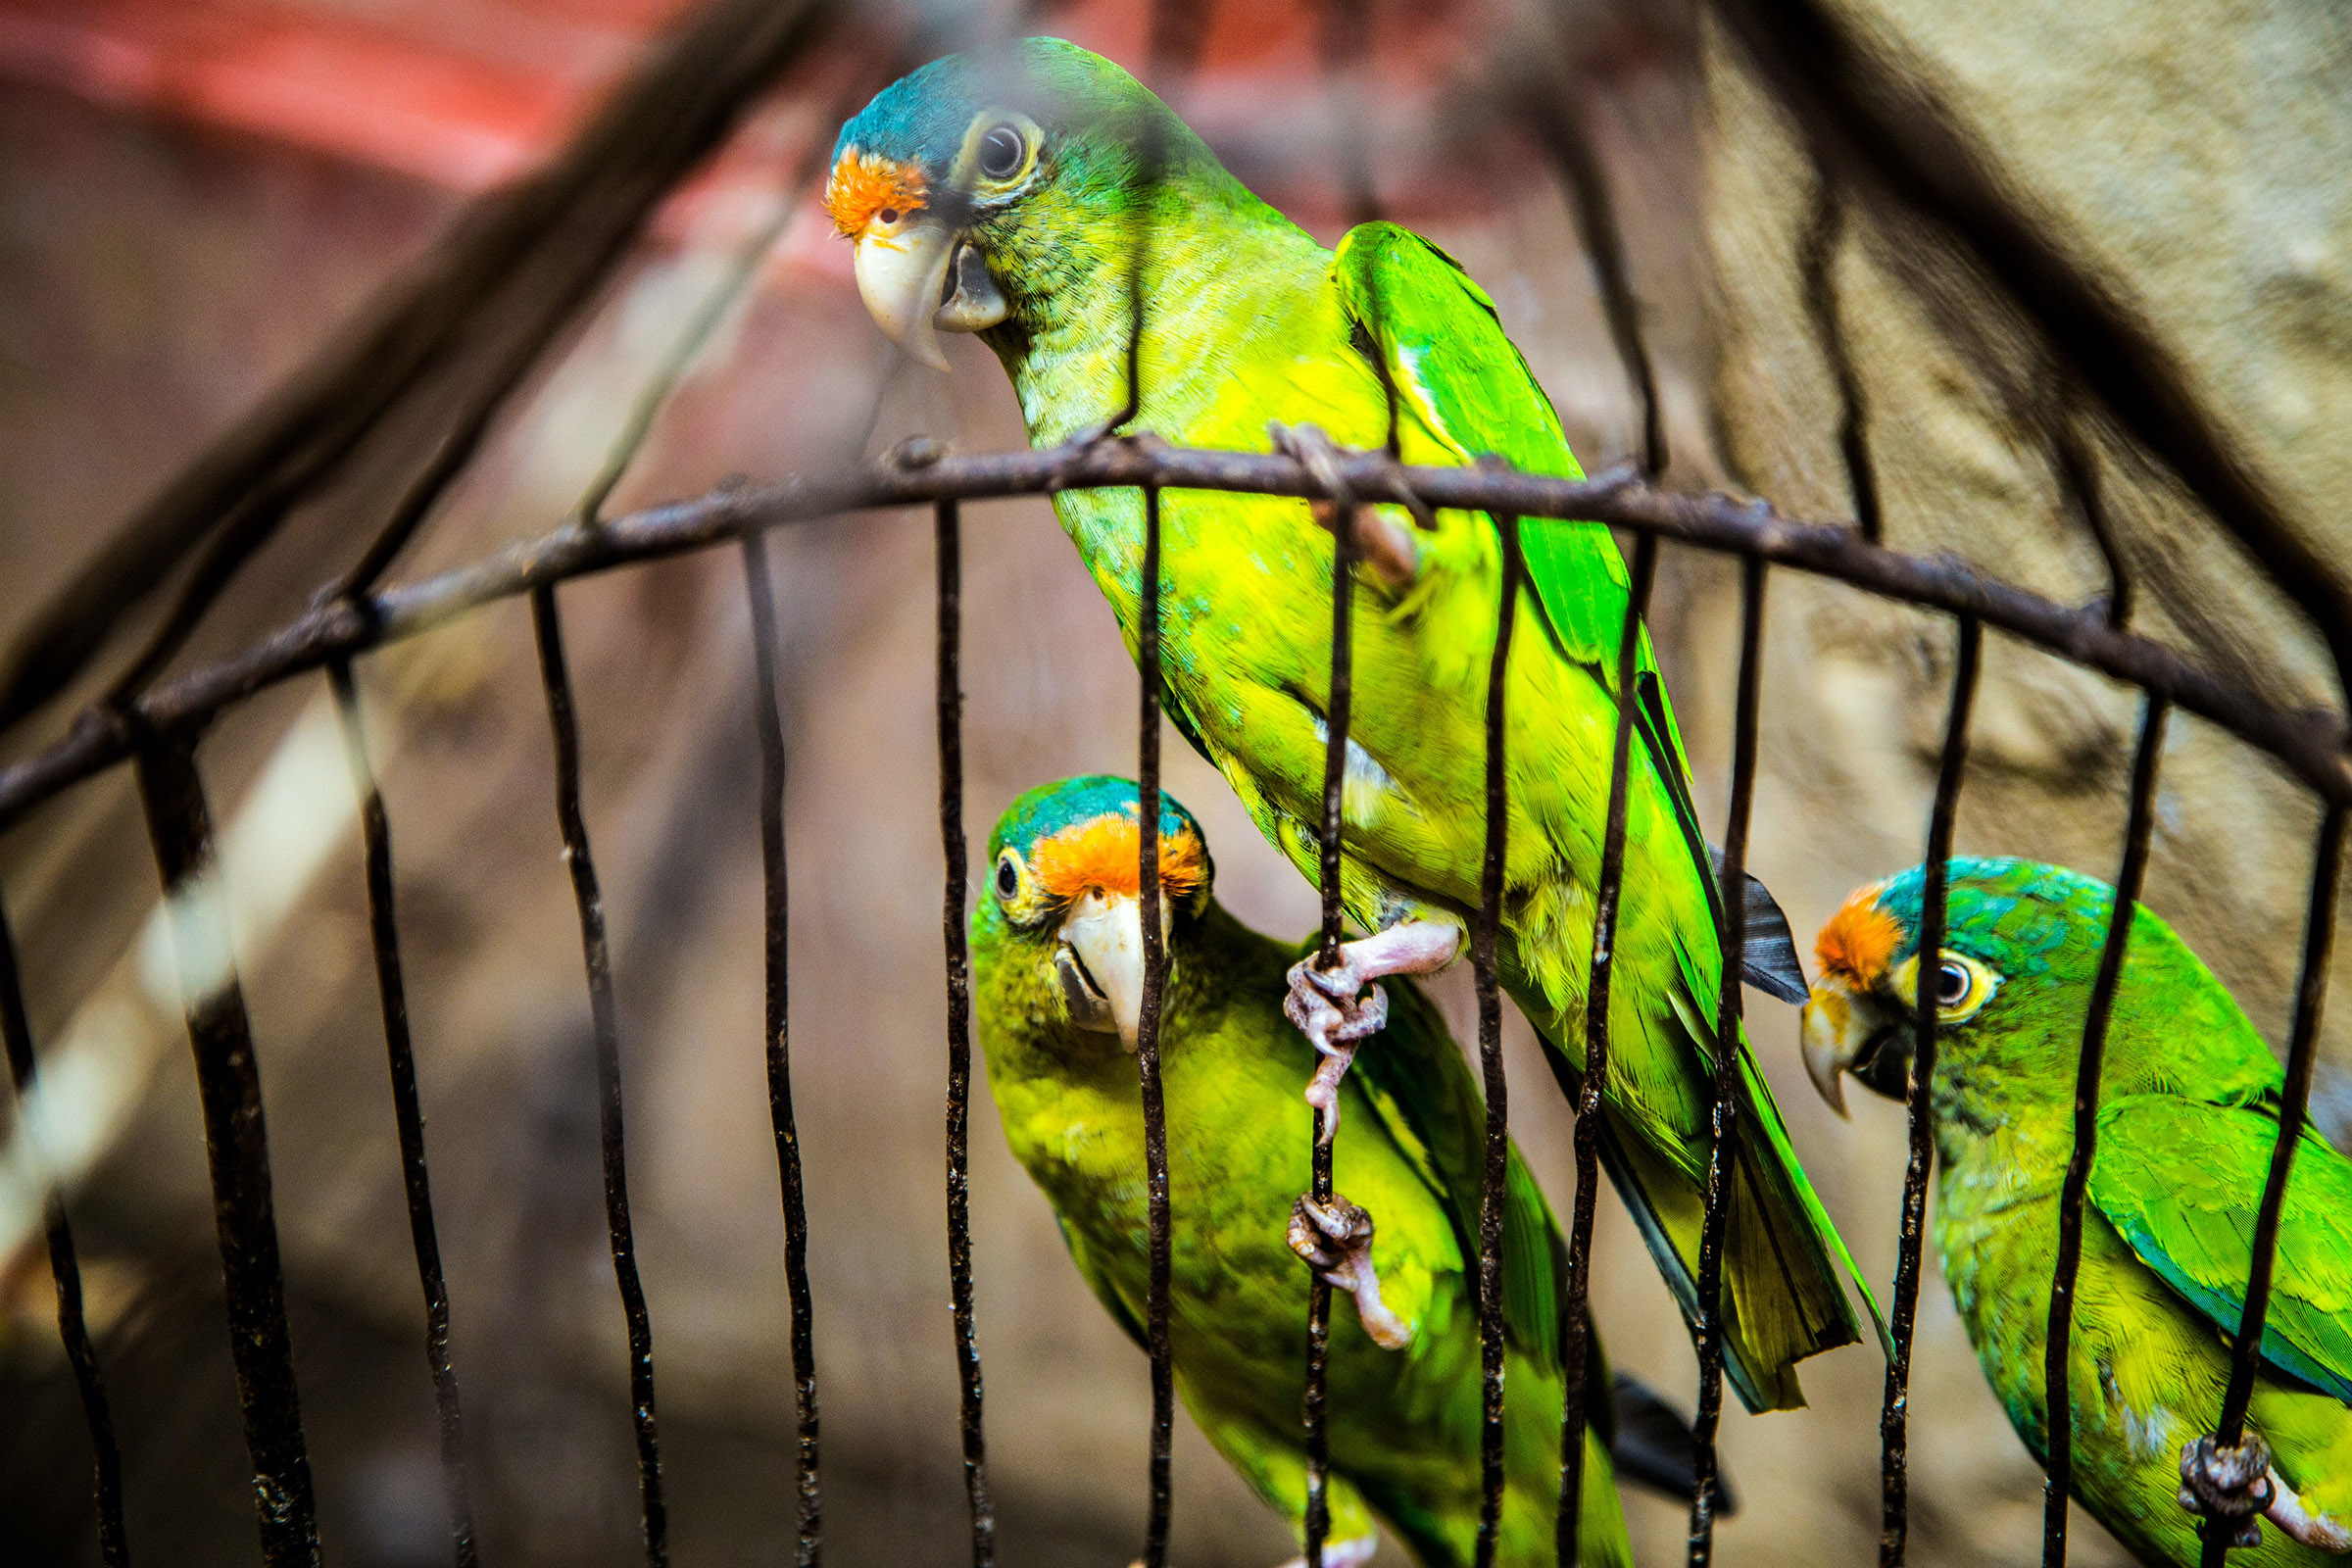 Three caged parakeets